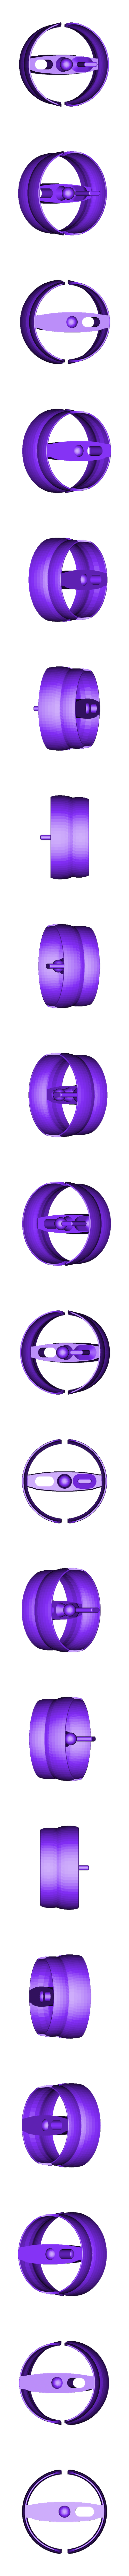 TriAxis_Rotation_Locked_Open.STL Download STL file TriAxis cable/hose/pipe chain guide • 3D printable model, ScaleToReal